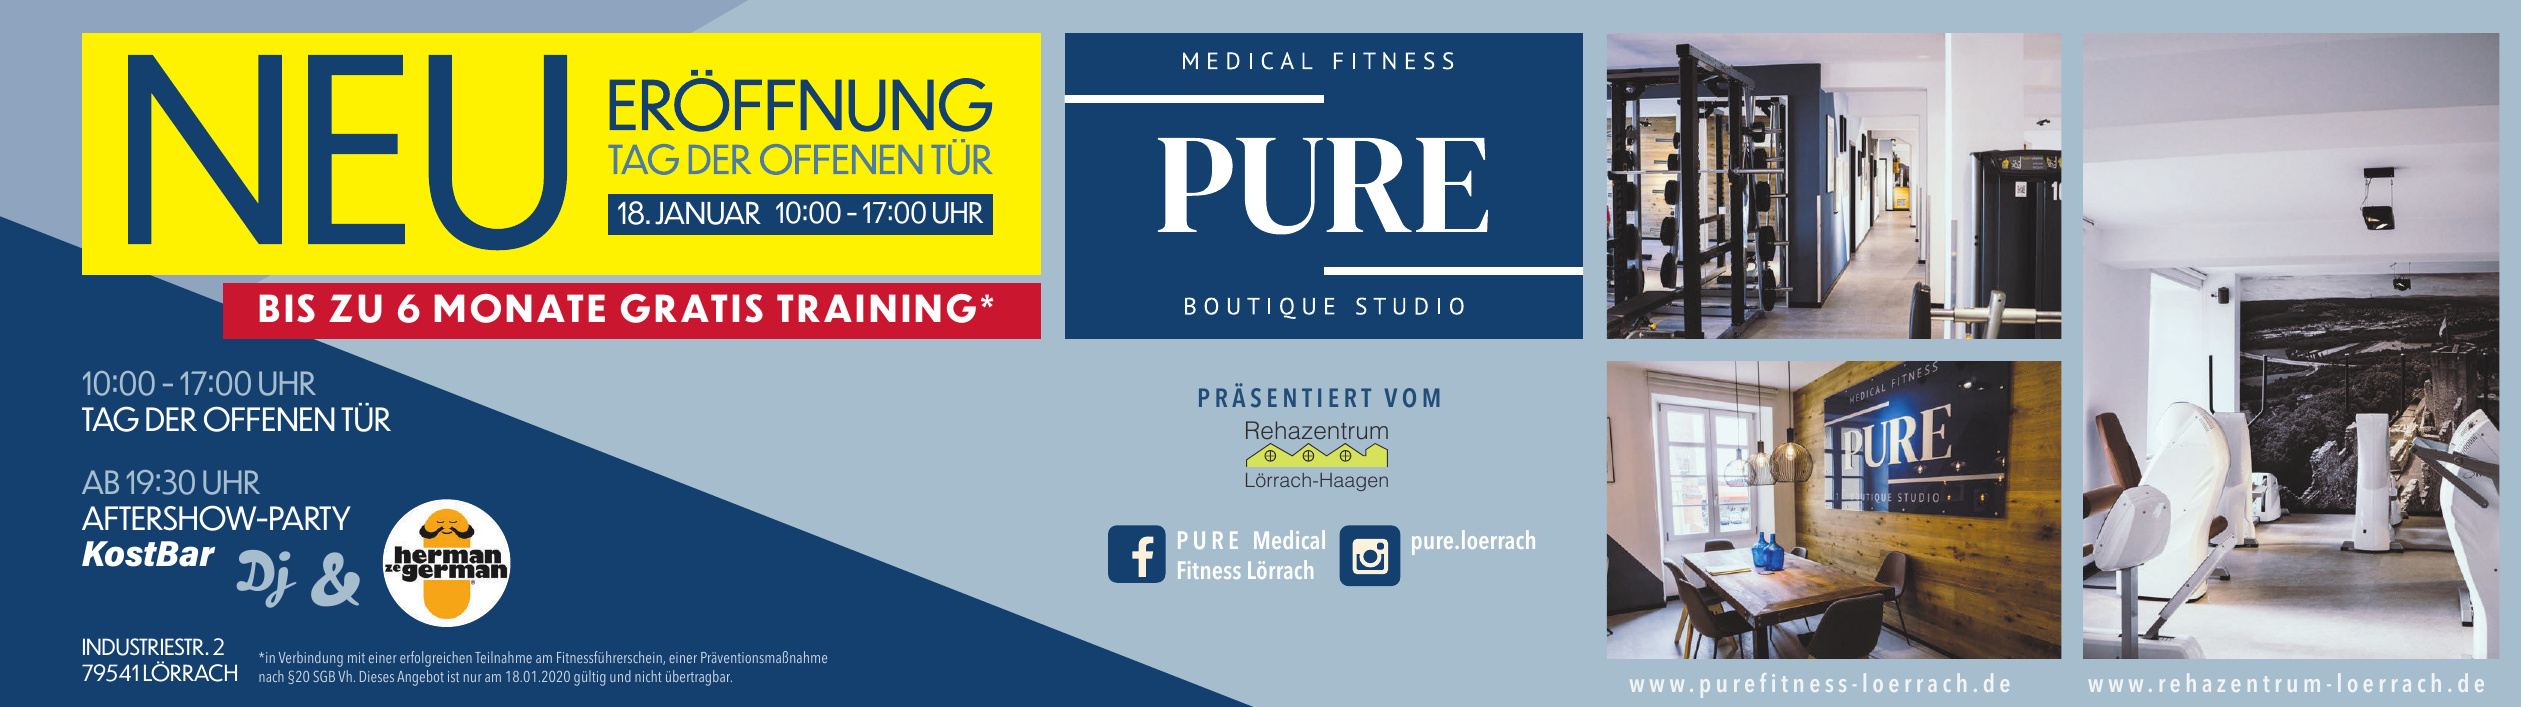 Medical Fitness Pure Boutique Studio